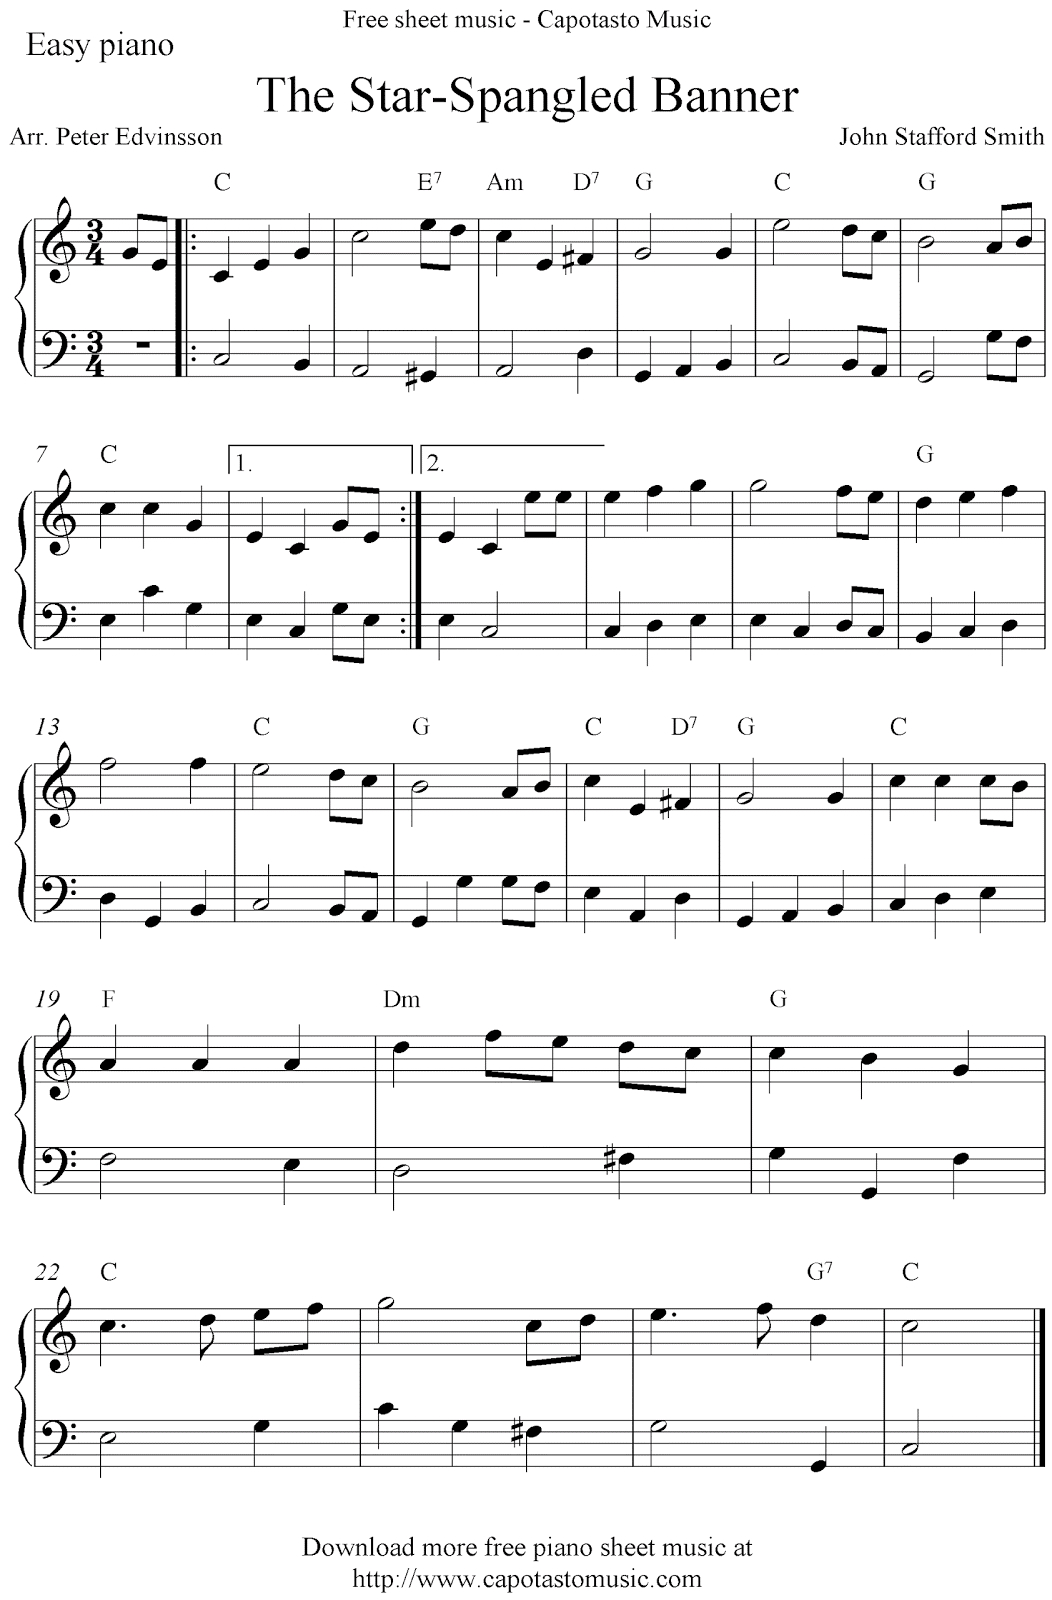 Free Easy Piano Sheet Music Score, The Star-Spangled Banner - Free Printable Piano Sheet Music For The Star Spangled Banner